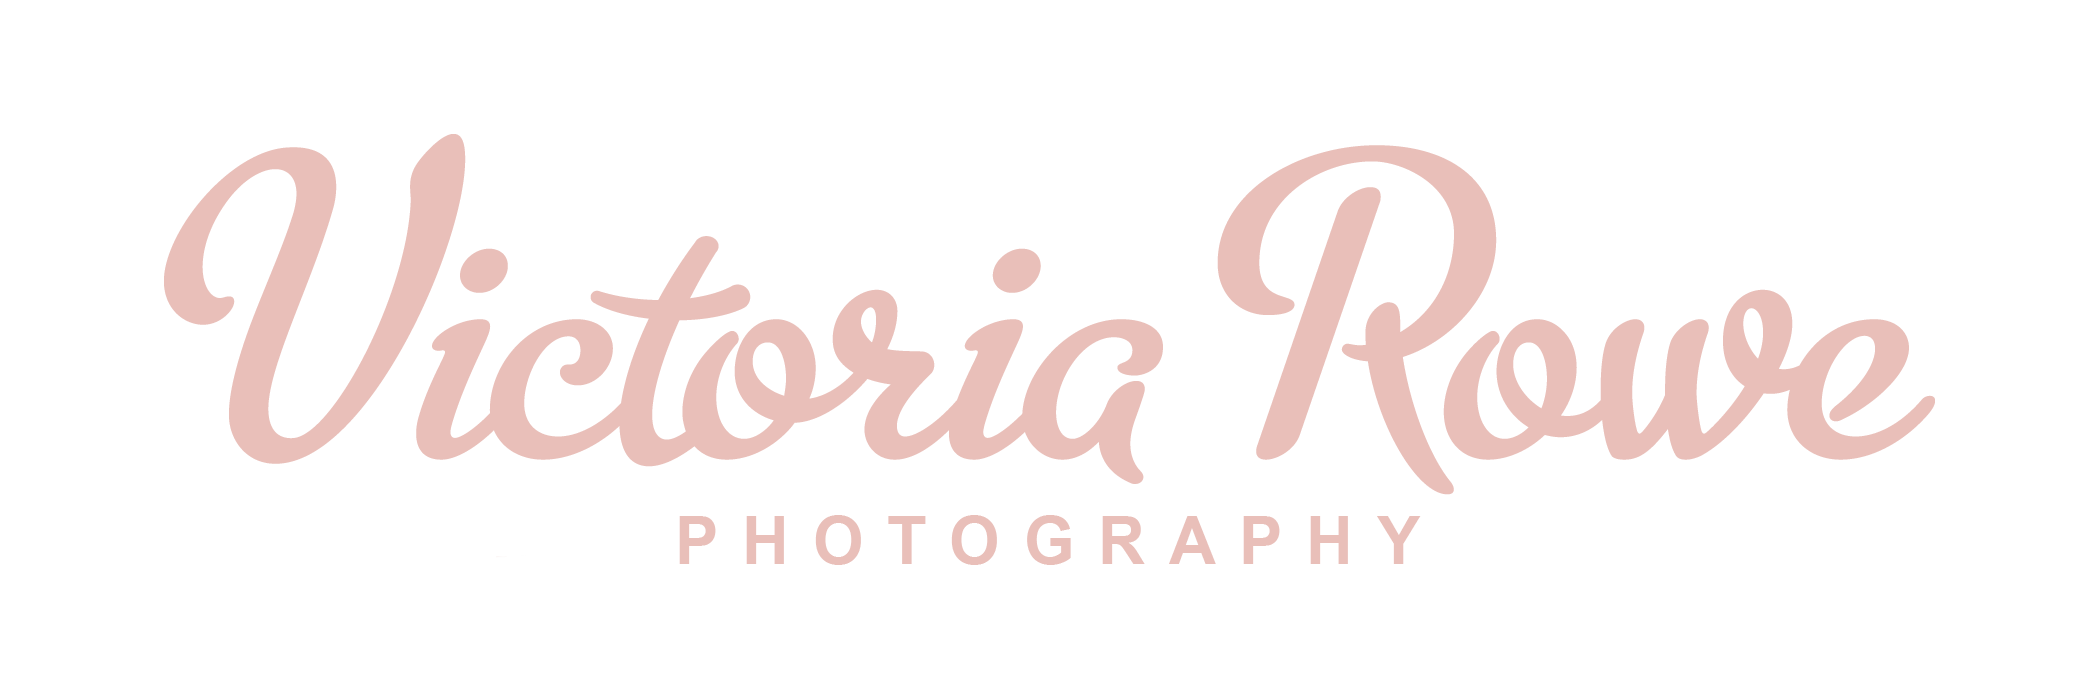 Victoria Rowe Photography - Brand Photography and Family Portraits